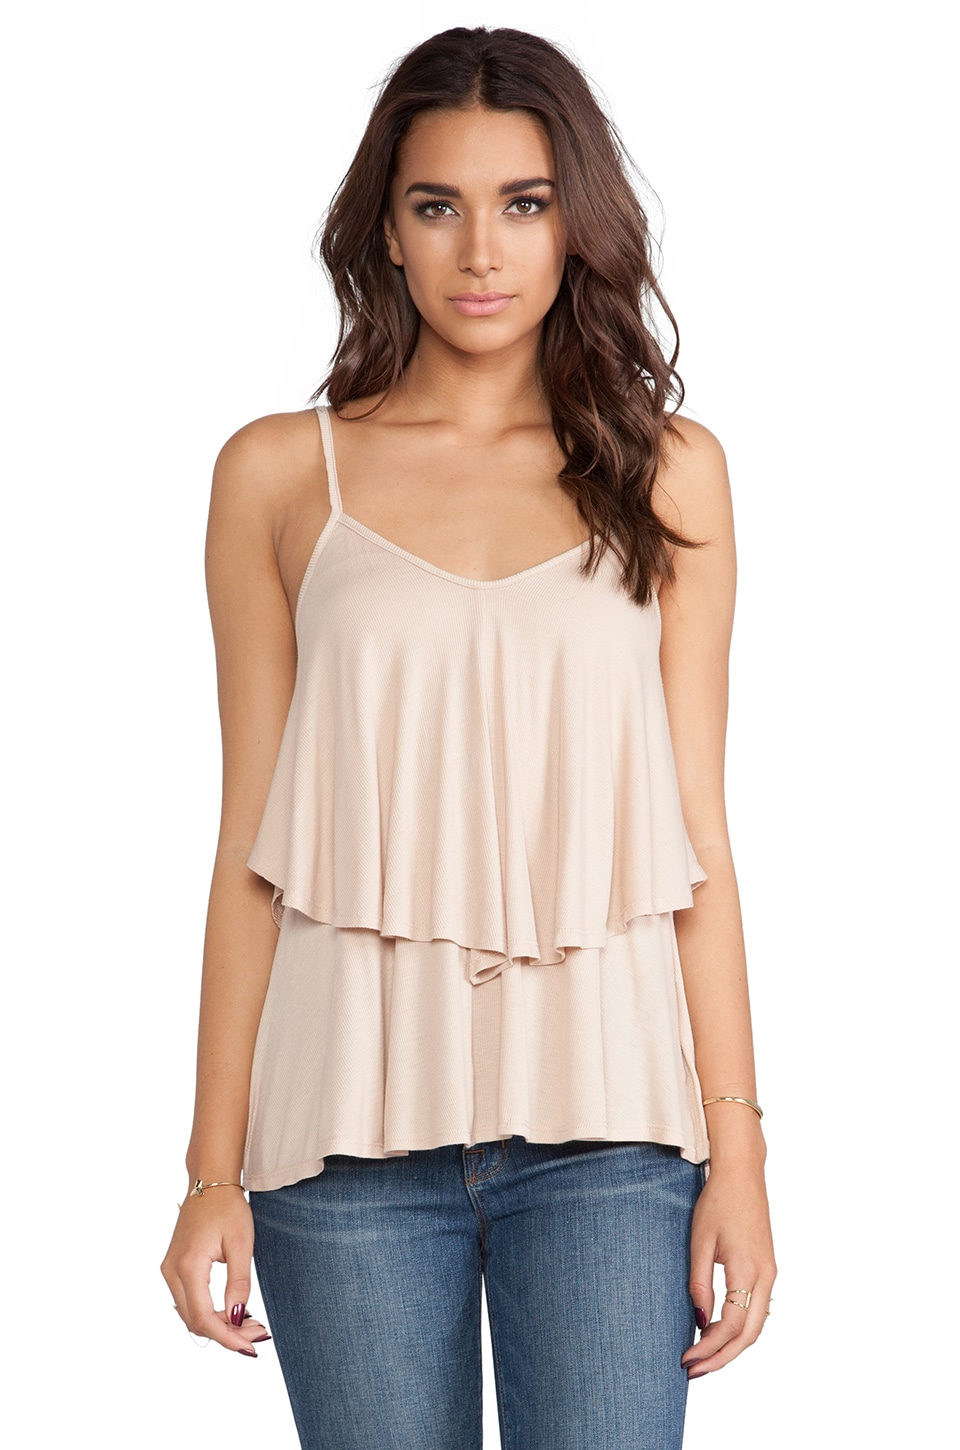 Rachel Pally Rib Ruffle Top in Bamboo